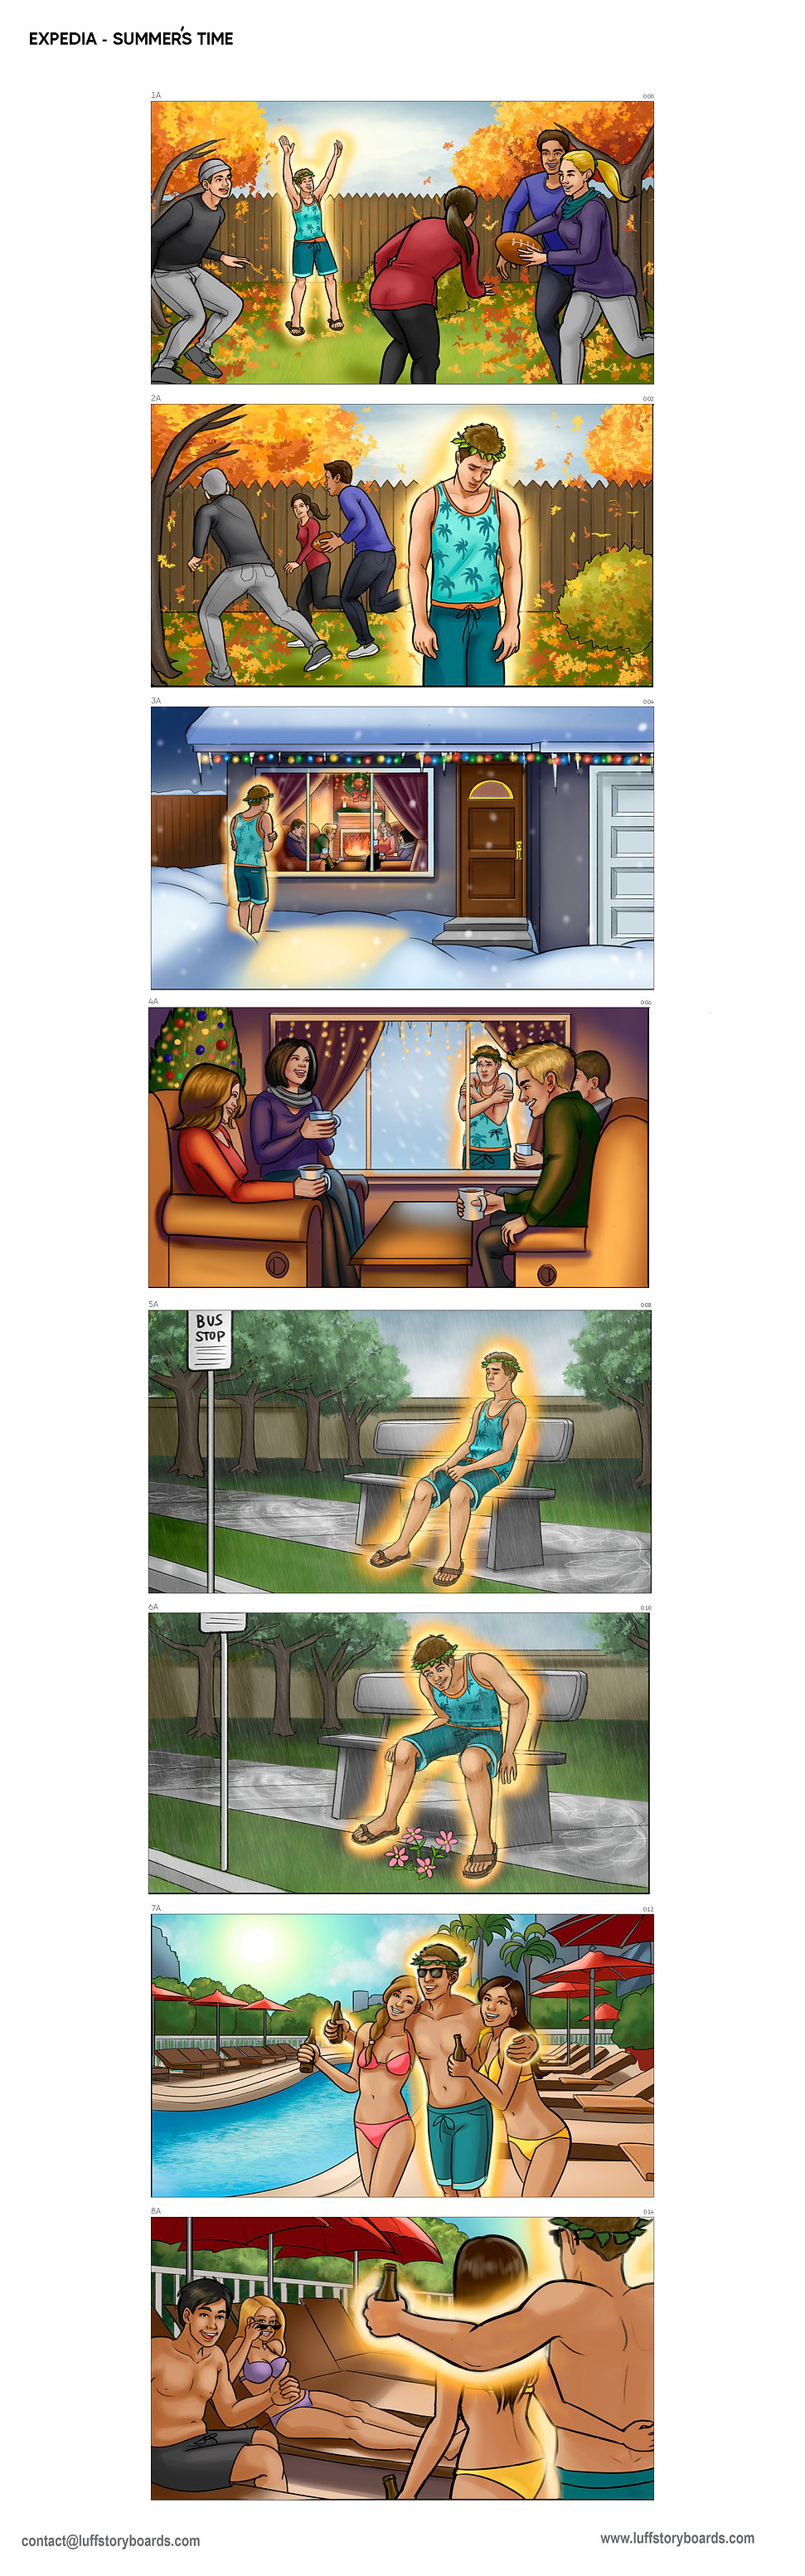 Expedia - Summers Time_Luffstoryboards.j